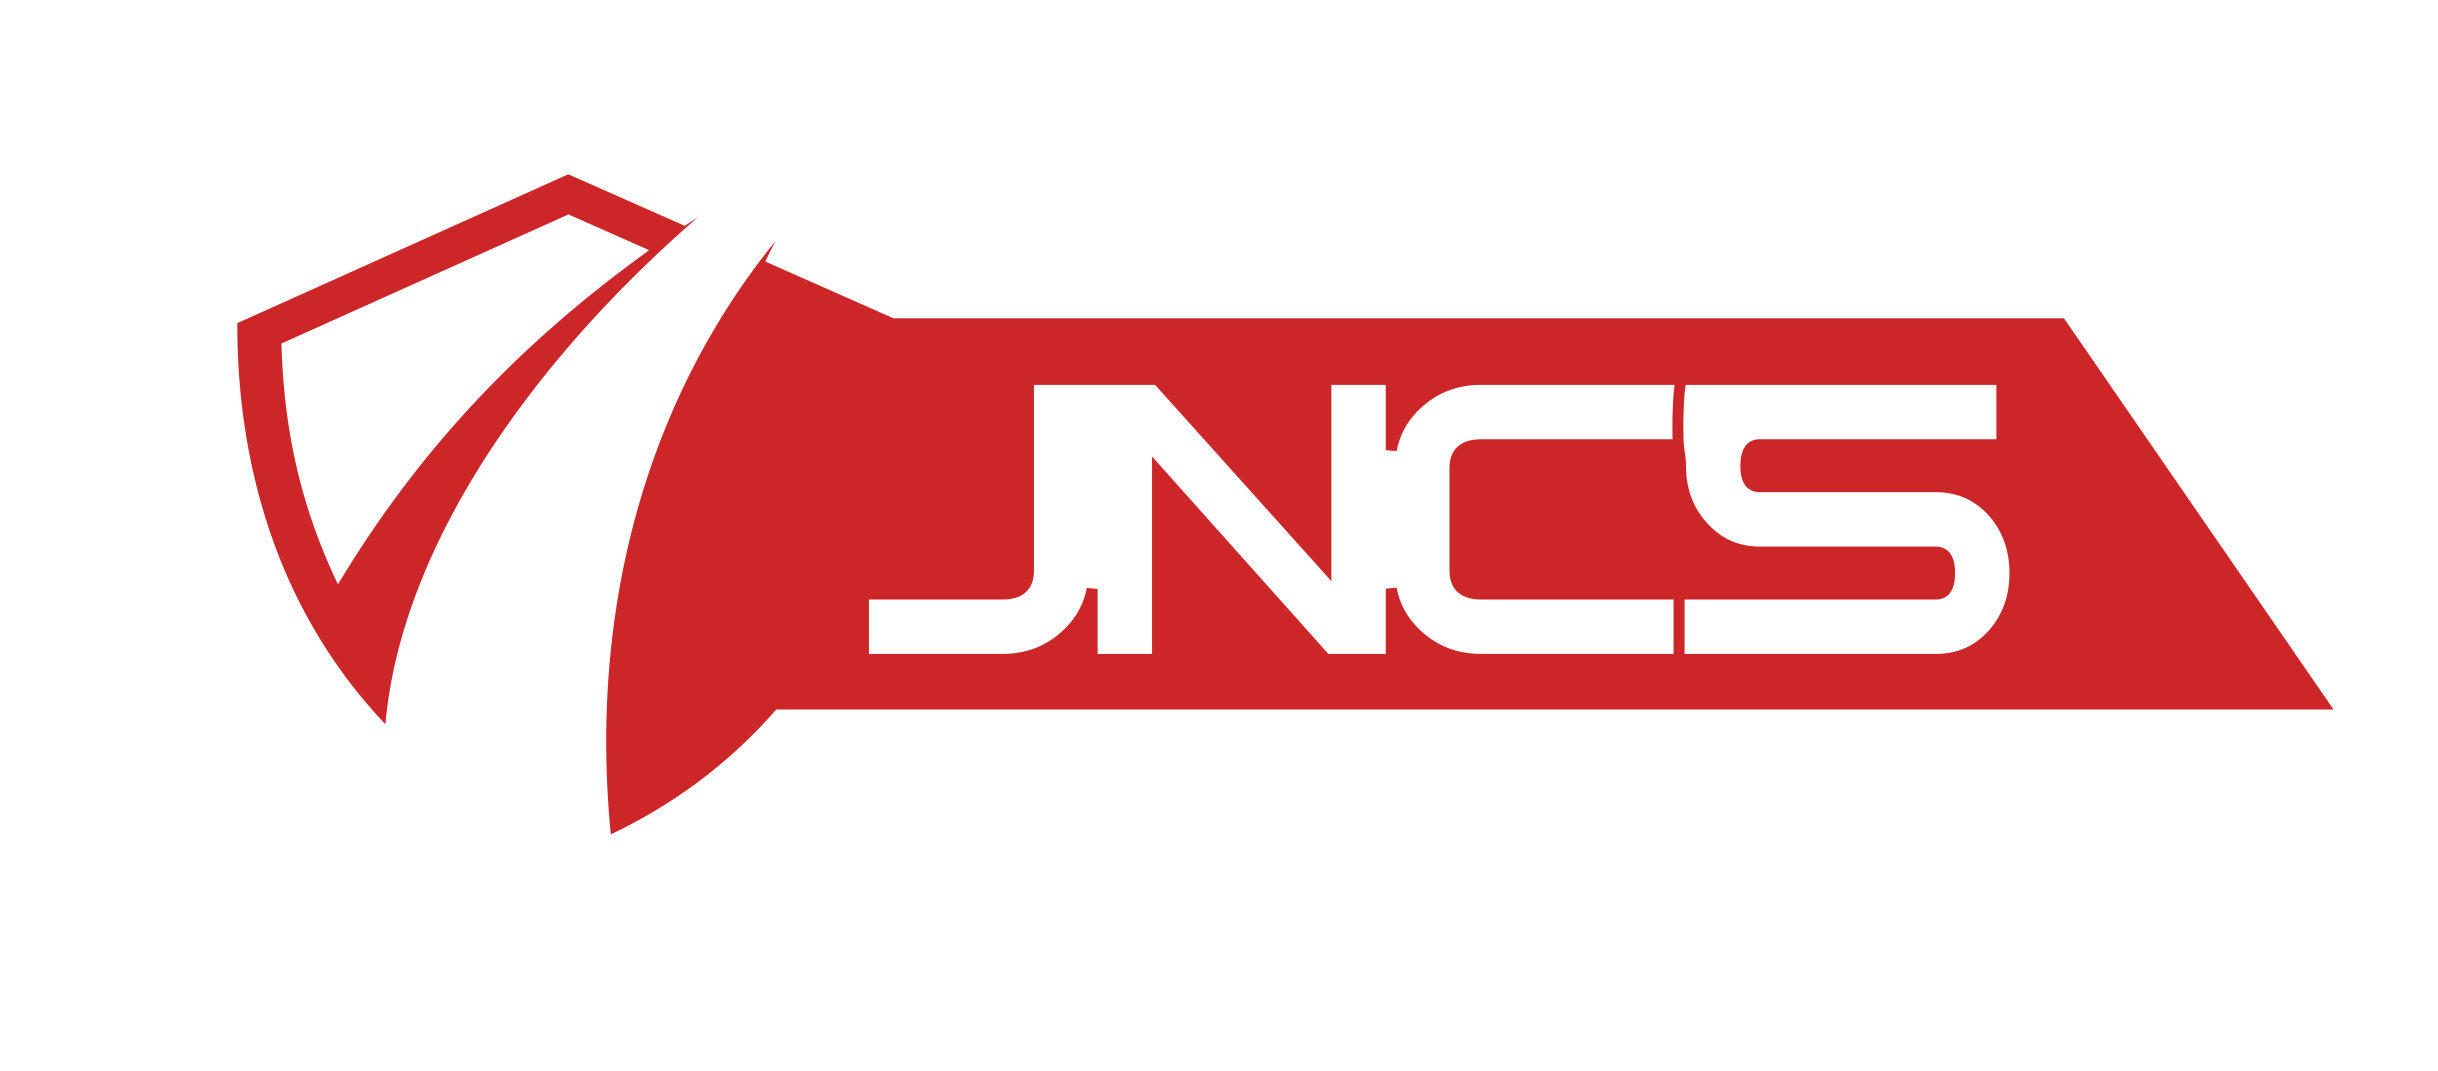 JNCS Beyond Security